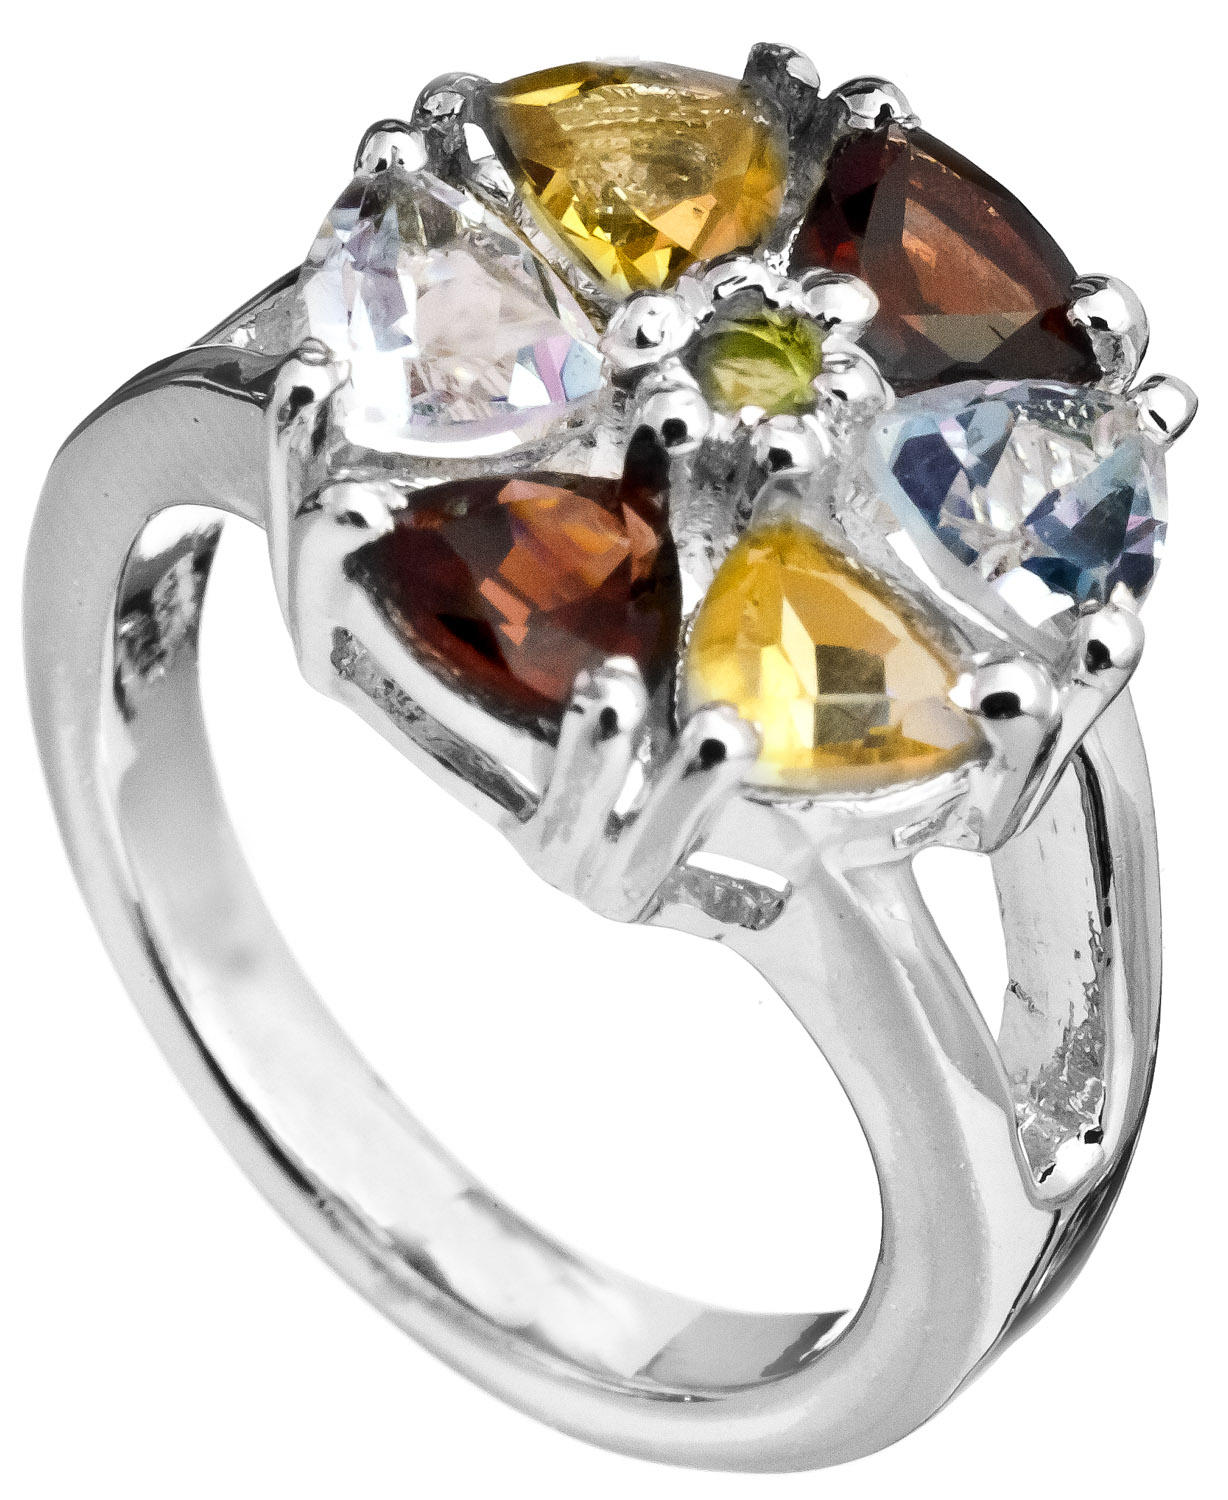 faceted gemstone ring citrine bt garnet and peridot